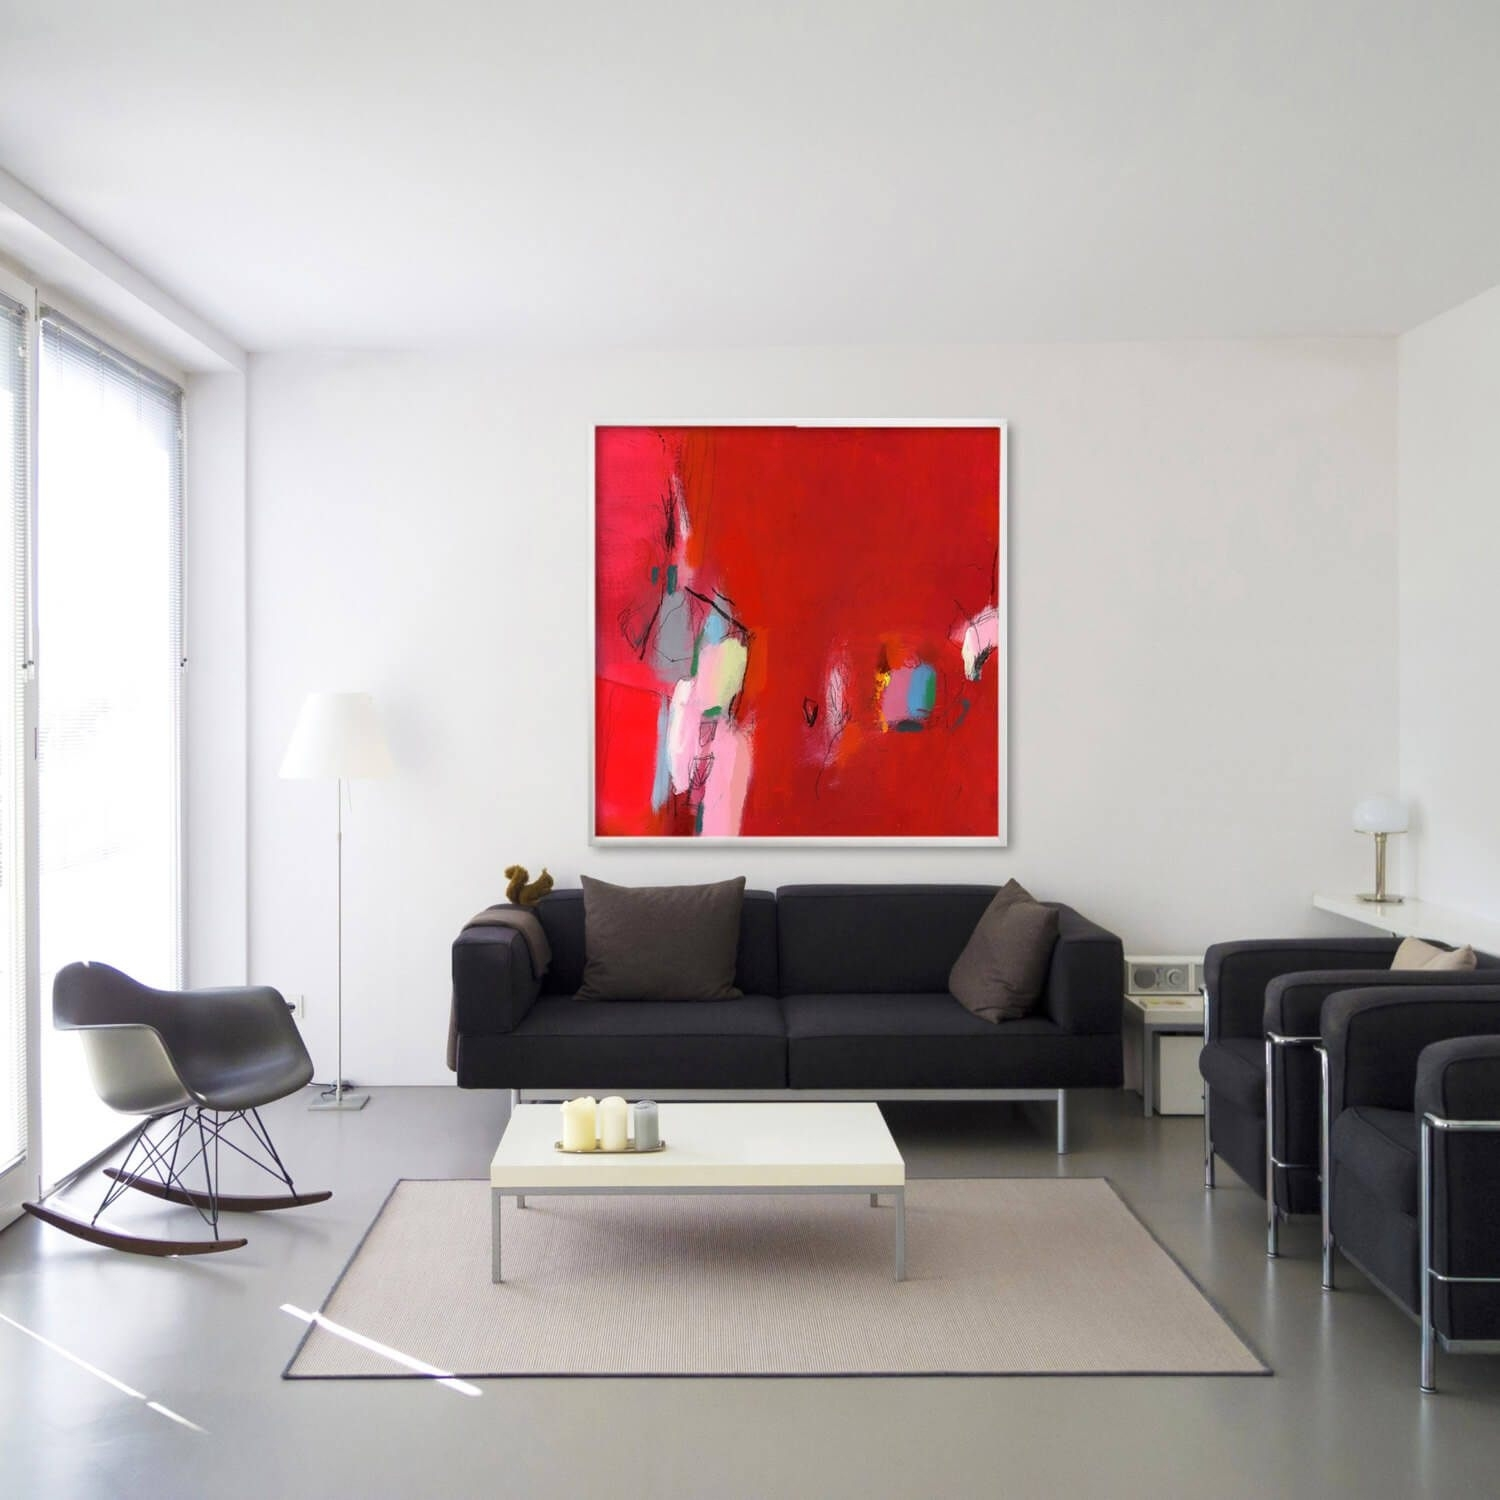 Living Room Paintings | Lonngrenwidell With Current Abstract Wall Art Living Room (Gallery 7 of 20)